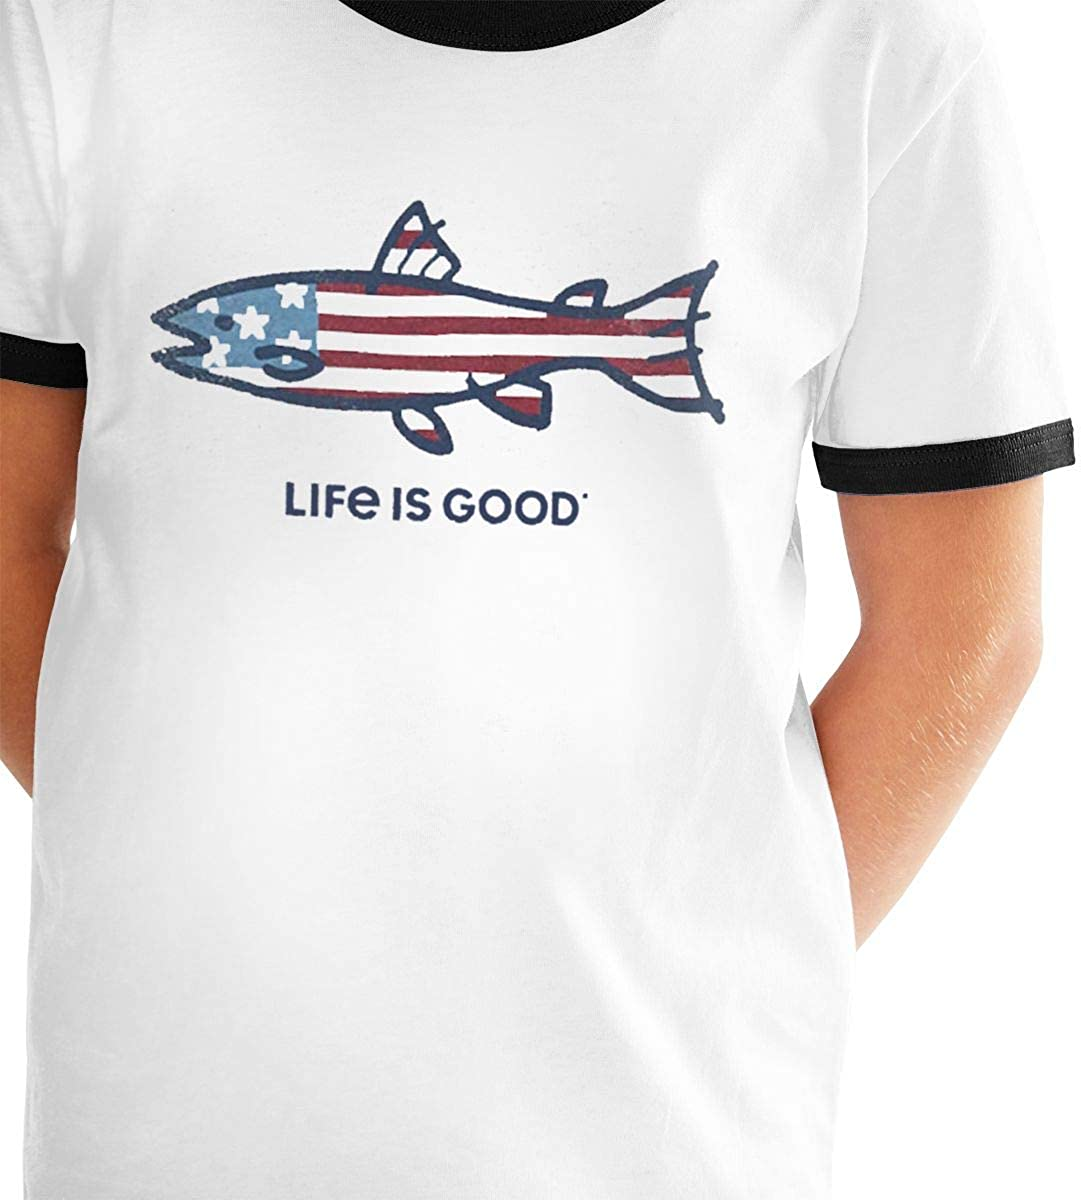 Life is Good Casual Loose Short Sleeve Tops Tee Shirts for Boys Girls